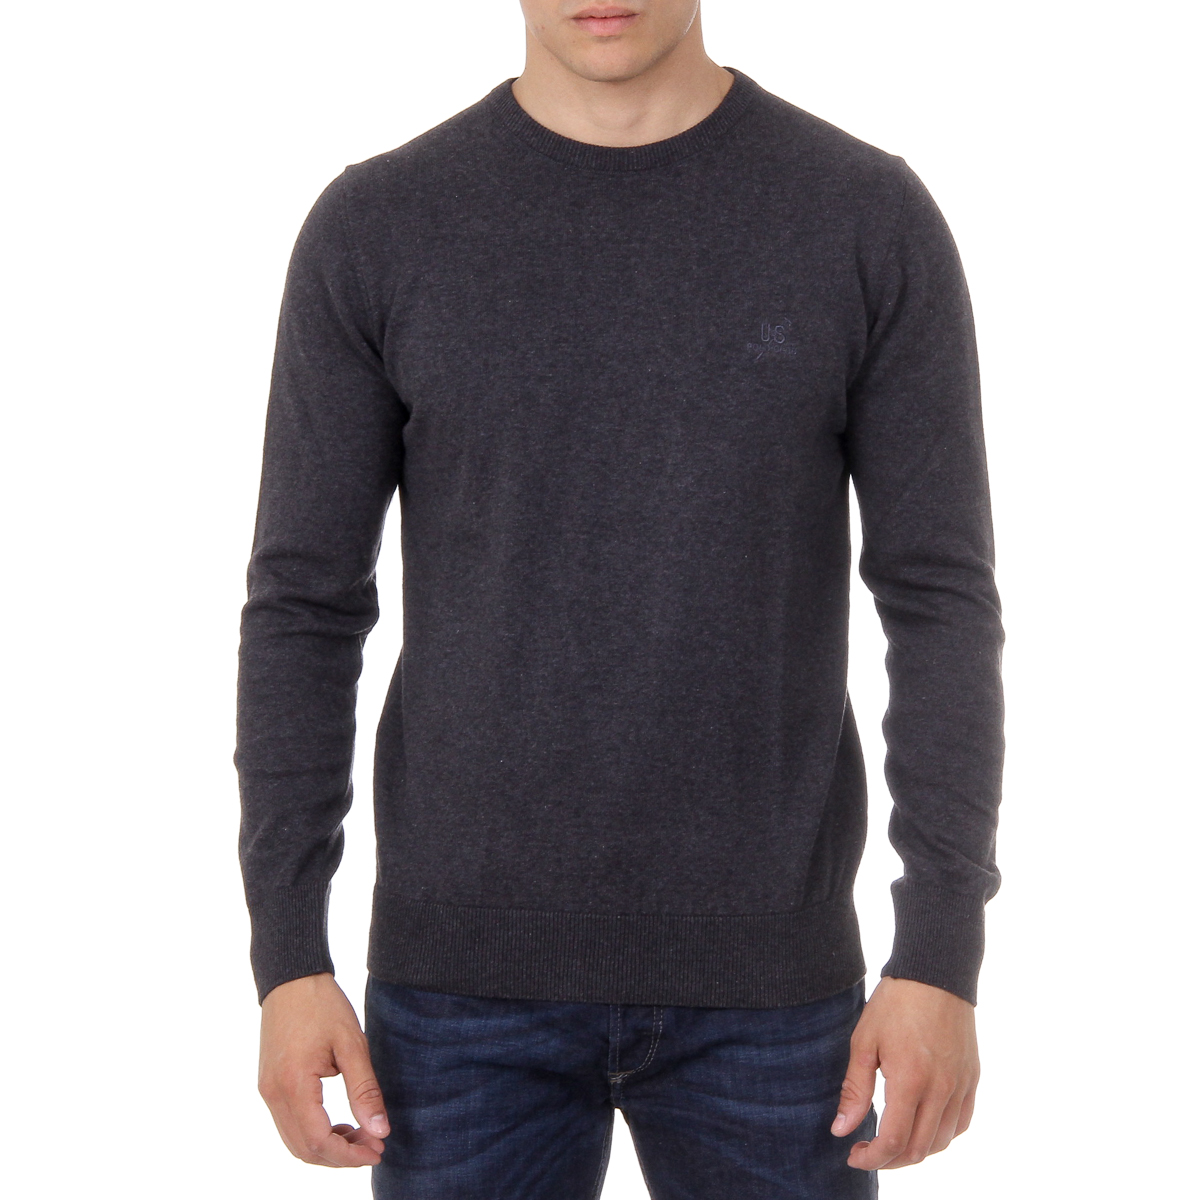 Primary image for Ufford & Suffolk Polo Club Mens Sweater Long Sleeves Round Neck PULLRUS100 ANTHR